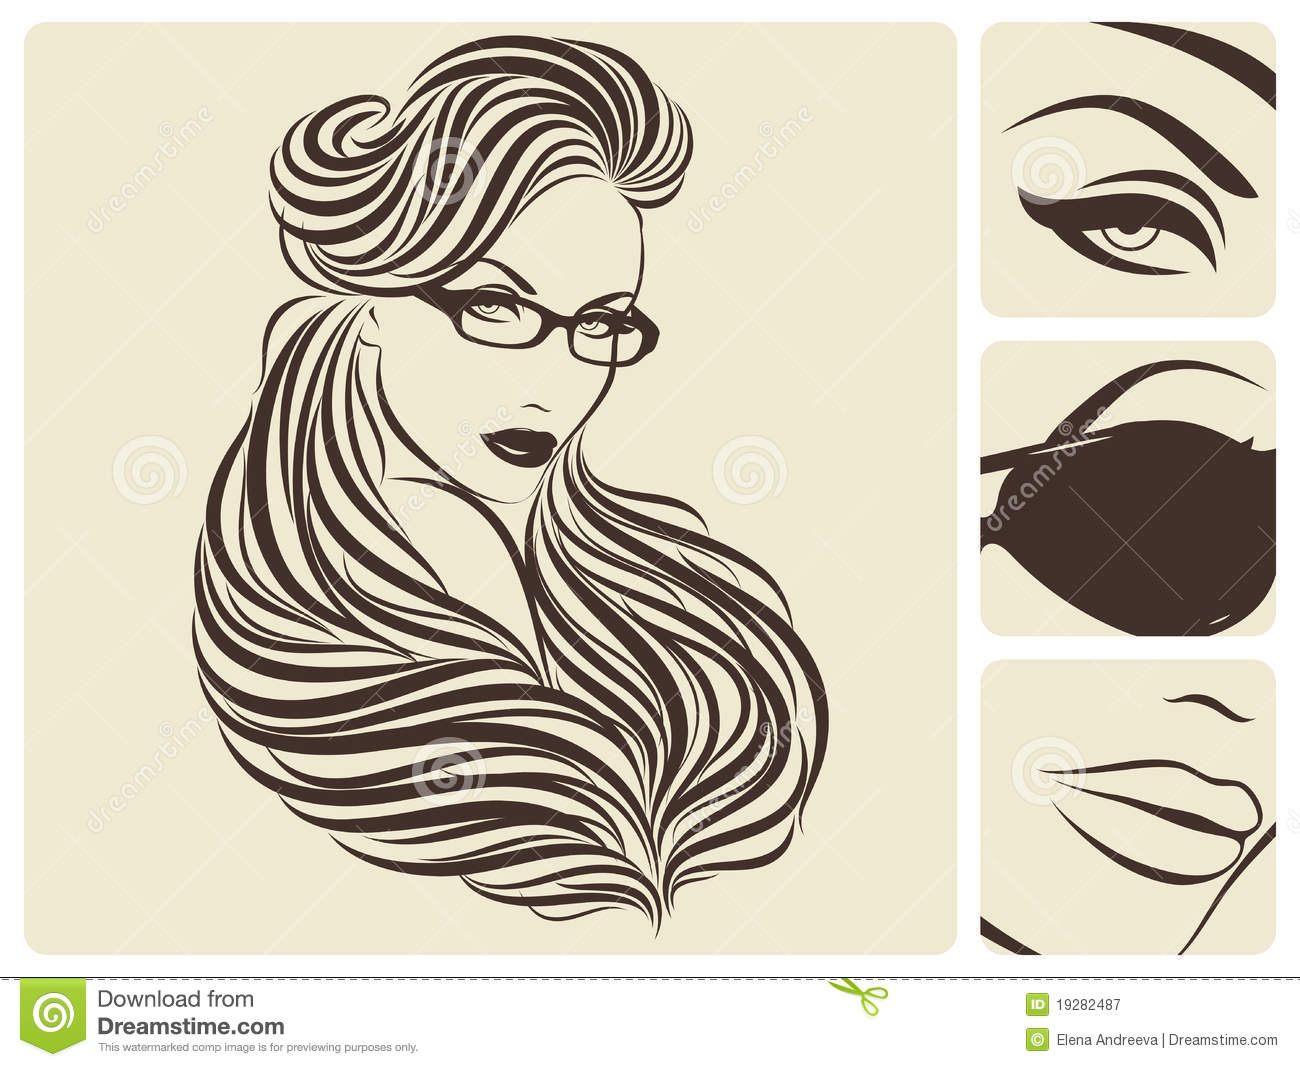 Hairstyle Vector: Long Wavy Hairstyle. Vector Illustration. Royalty Free